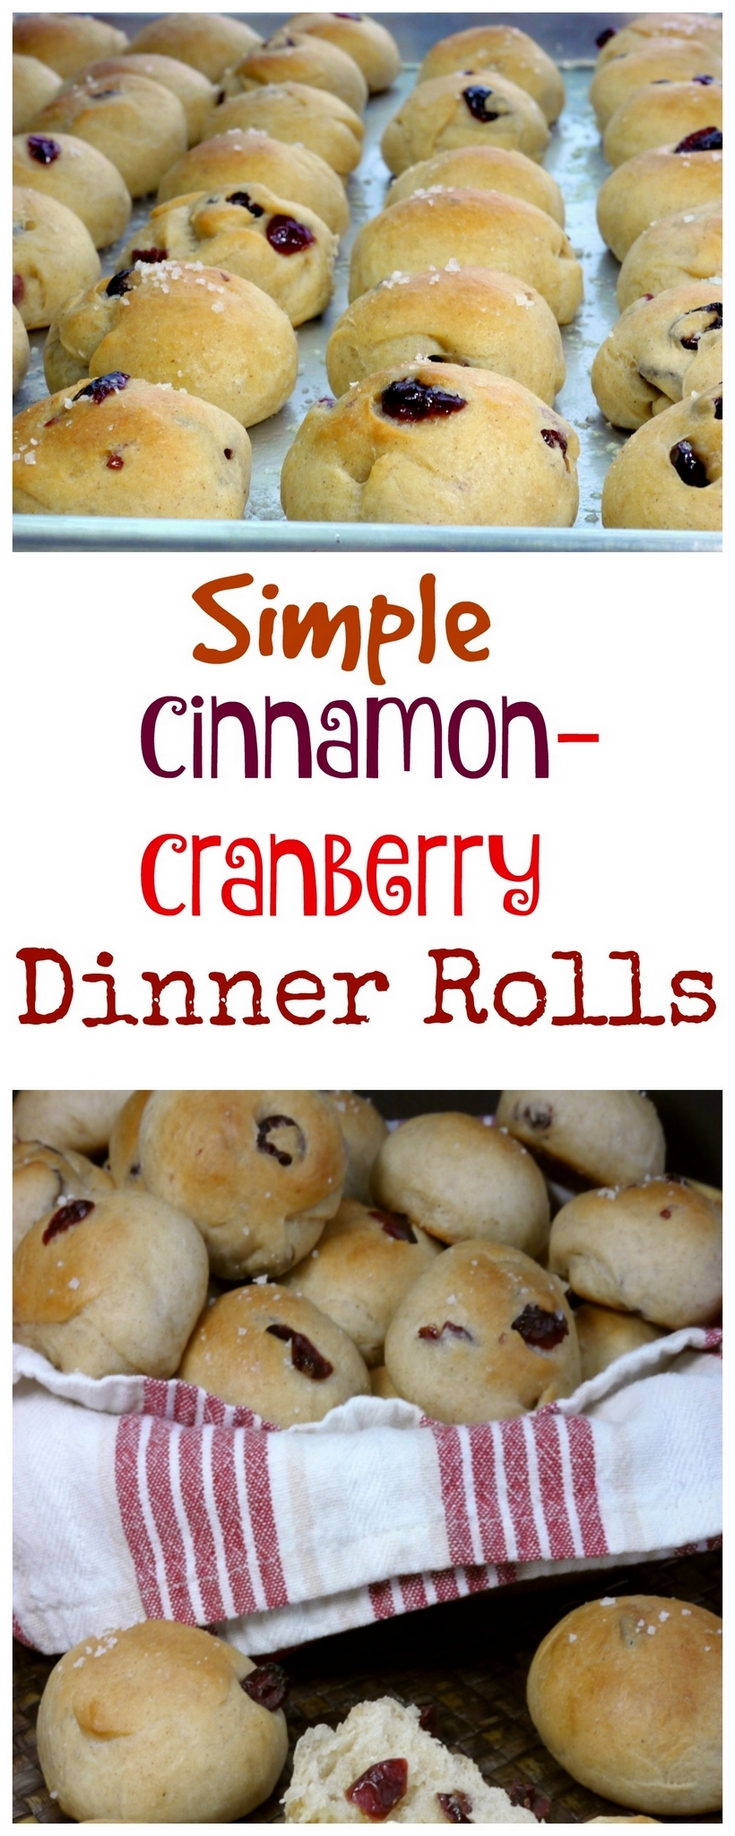 Perfect for all the holidays and every dinner in between, these SIMPLE CINNAMON-CRANBERRY DINNER ROLLS need to be on your menu. via @cmpollak1